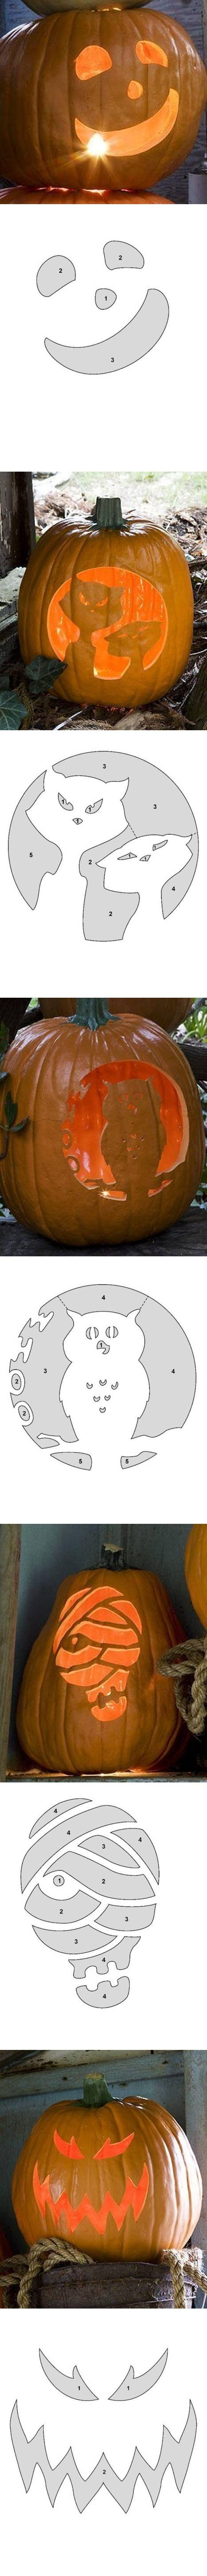 How to make Pumpkin Carving Patterns DIY tutorial instructions